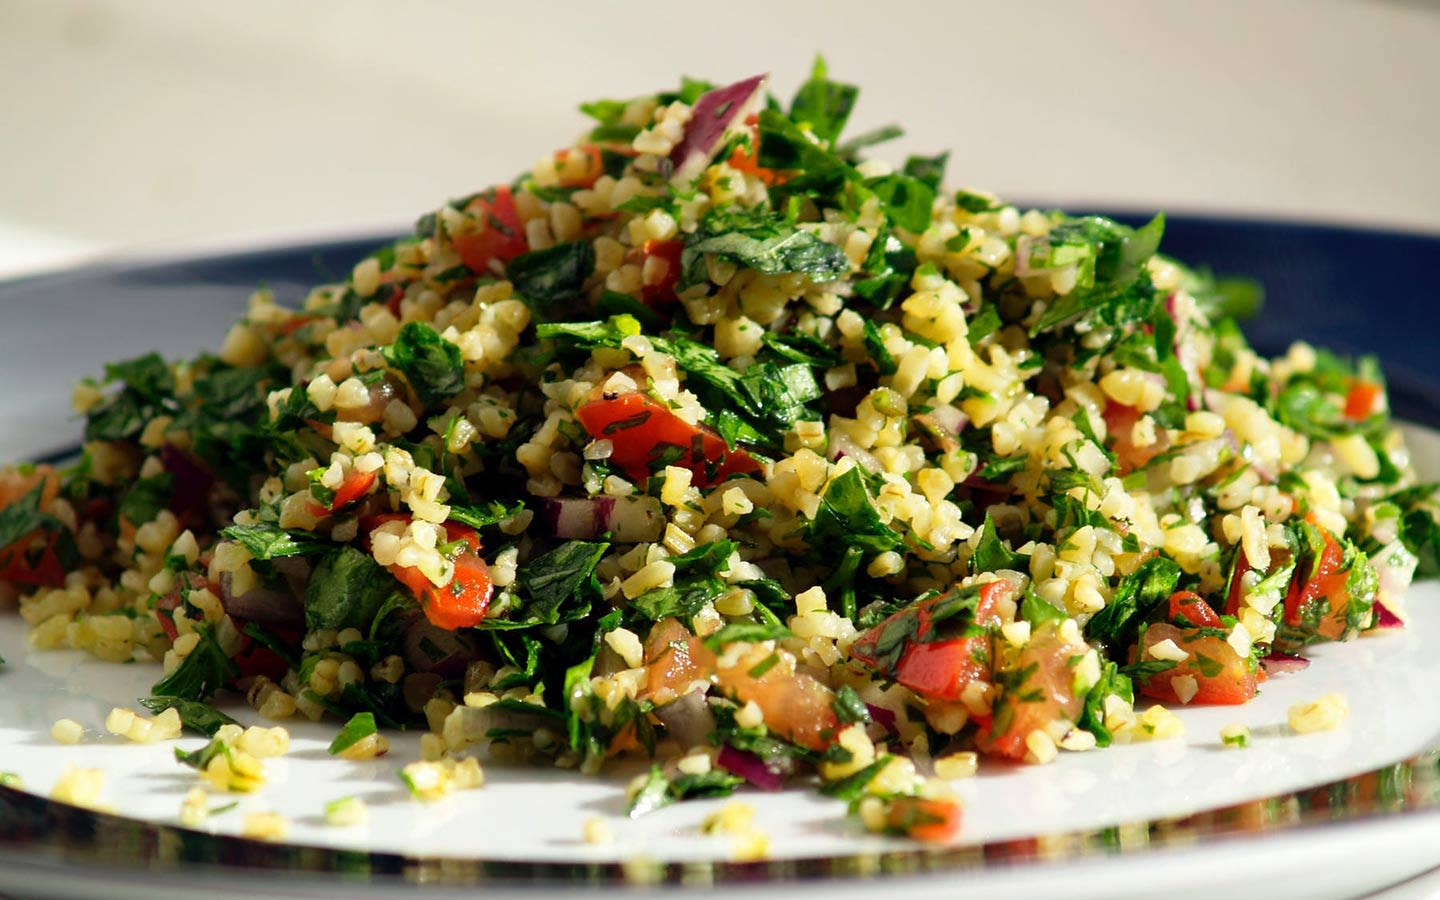 7 Spices Tabbouleh